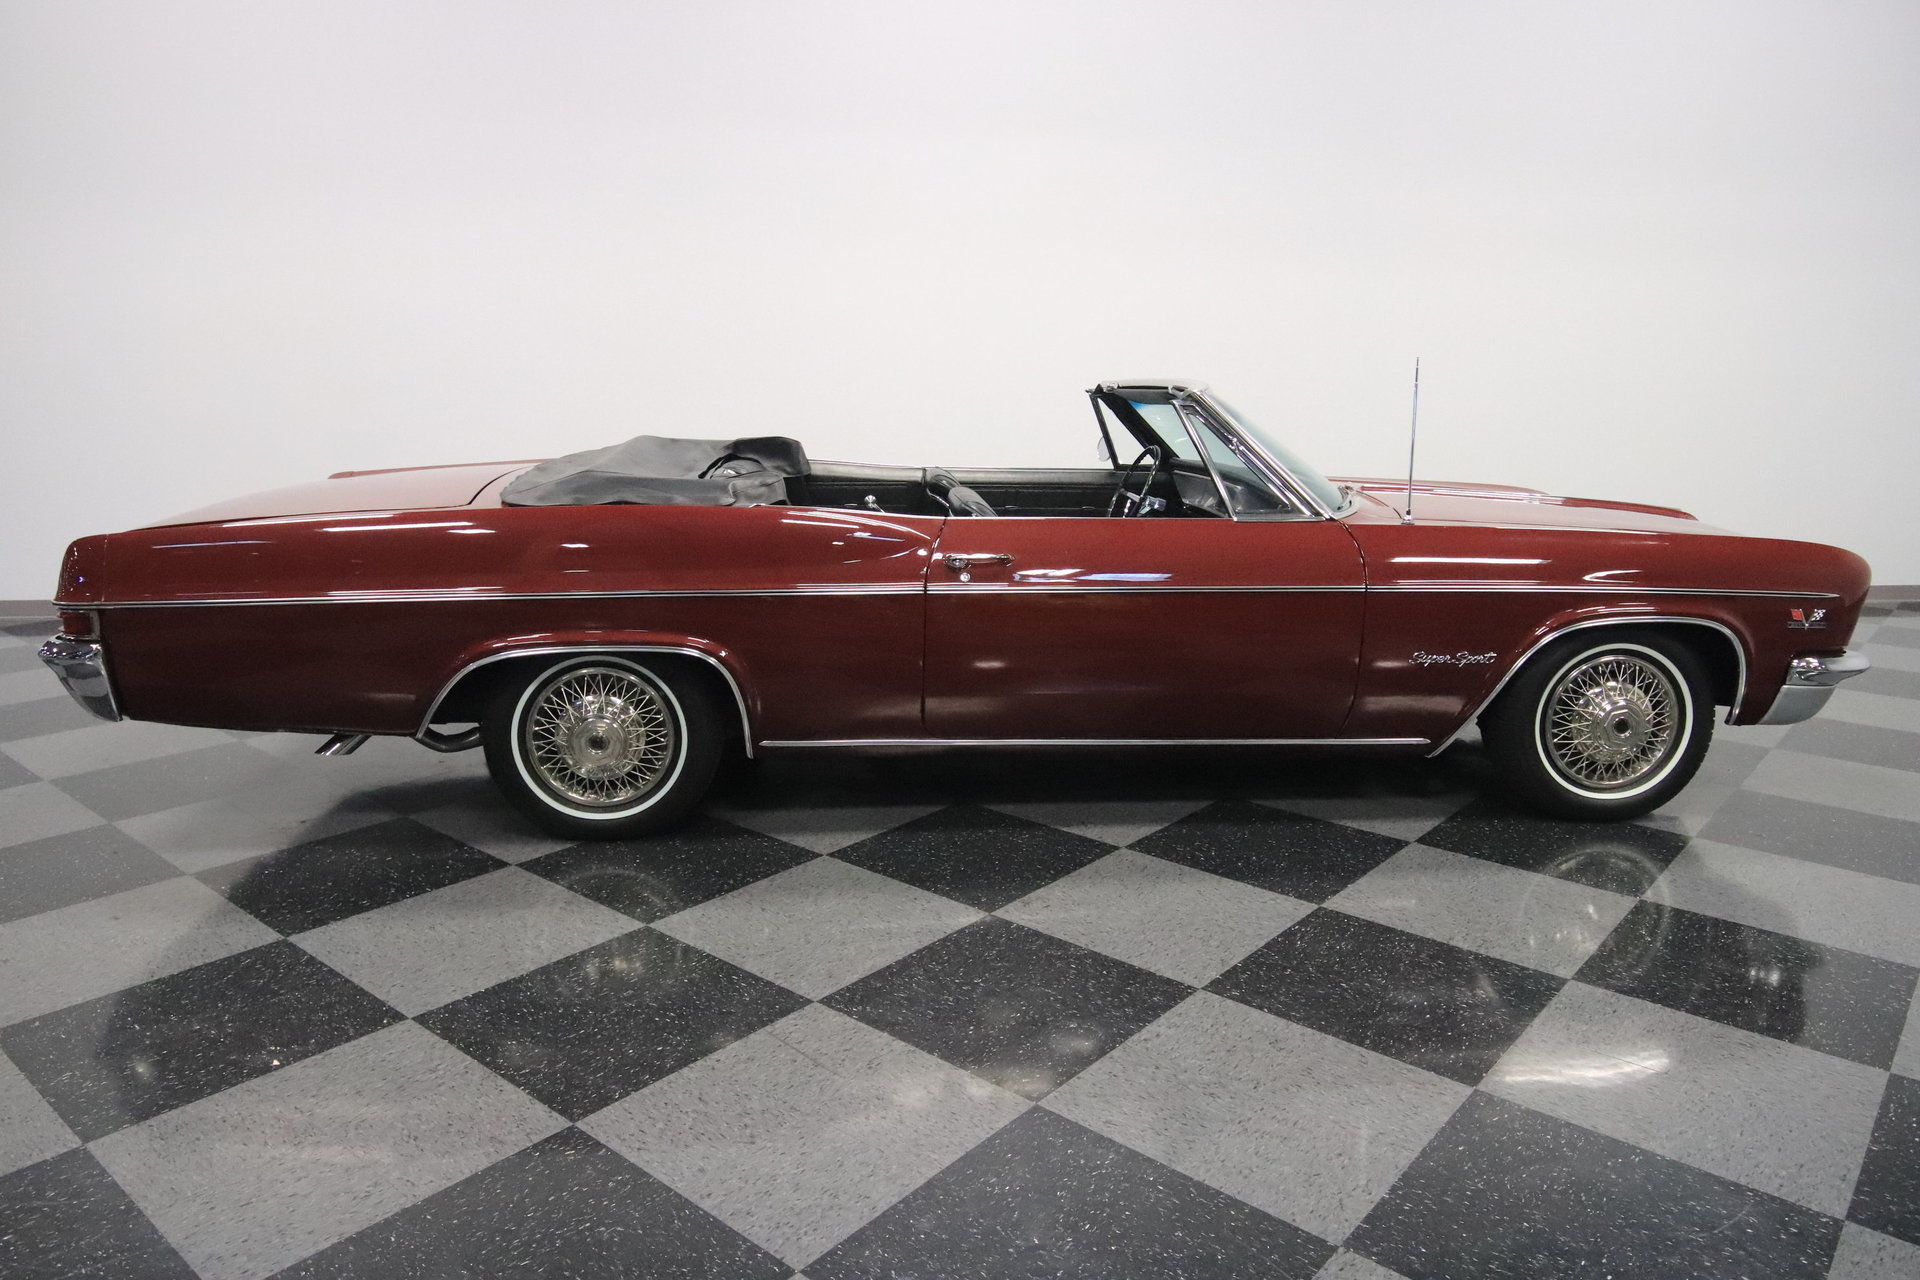 1966 Chevrolet Impala Streetside Classics The Nations Trusted Chevy Suspension Show More Photos